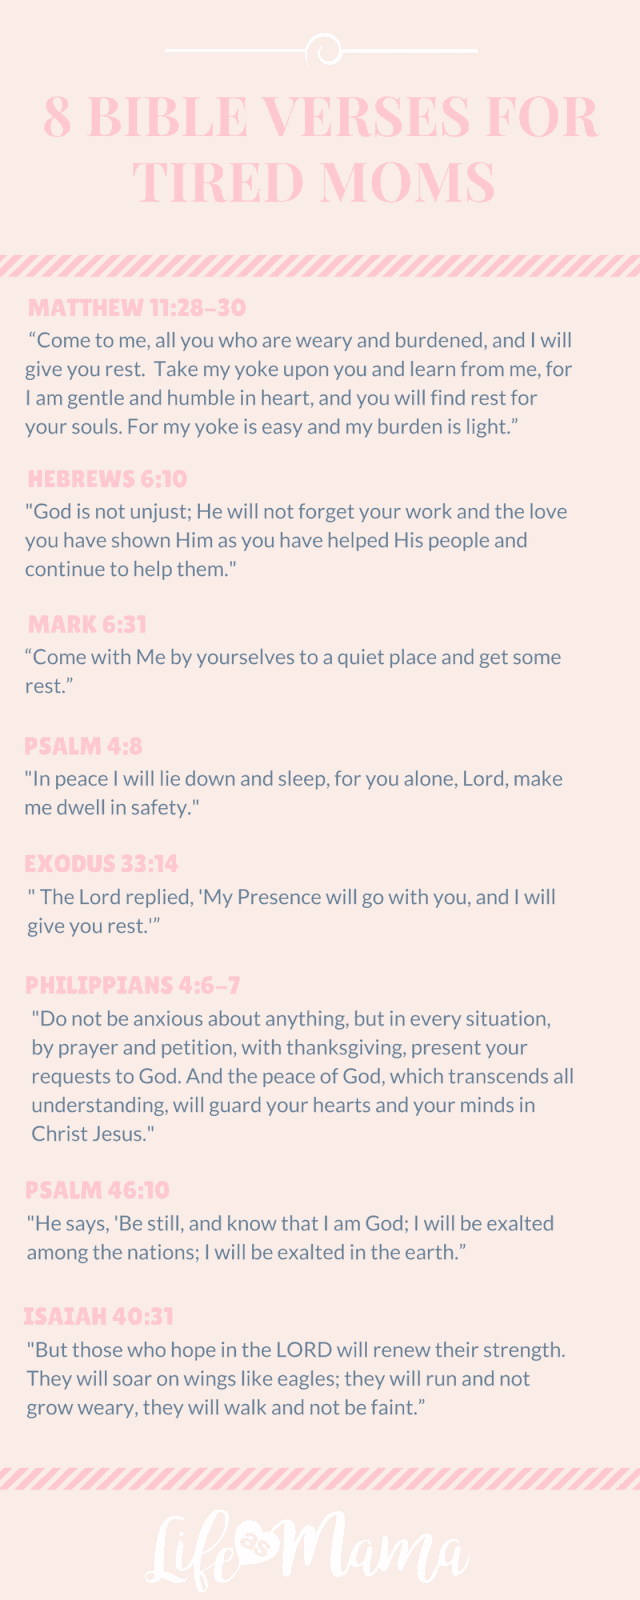 8 Bible Verses For Tired Moms